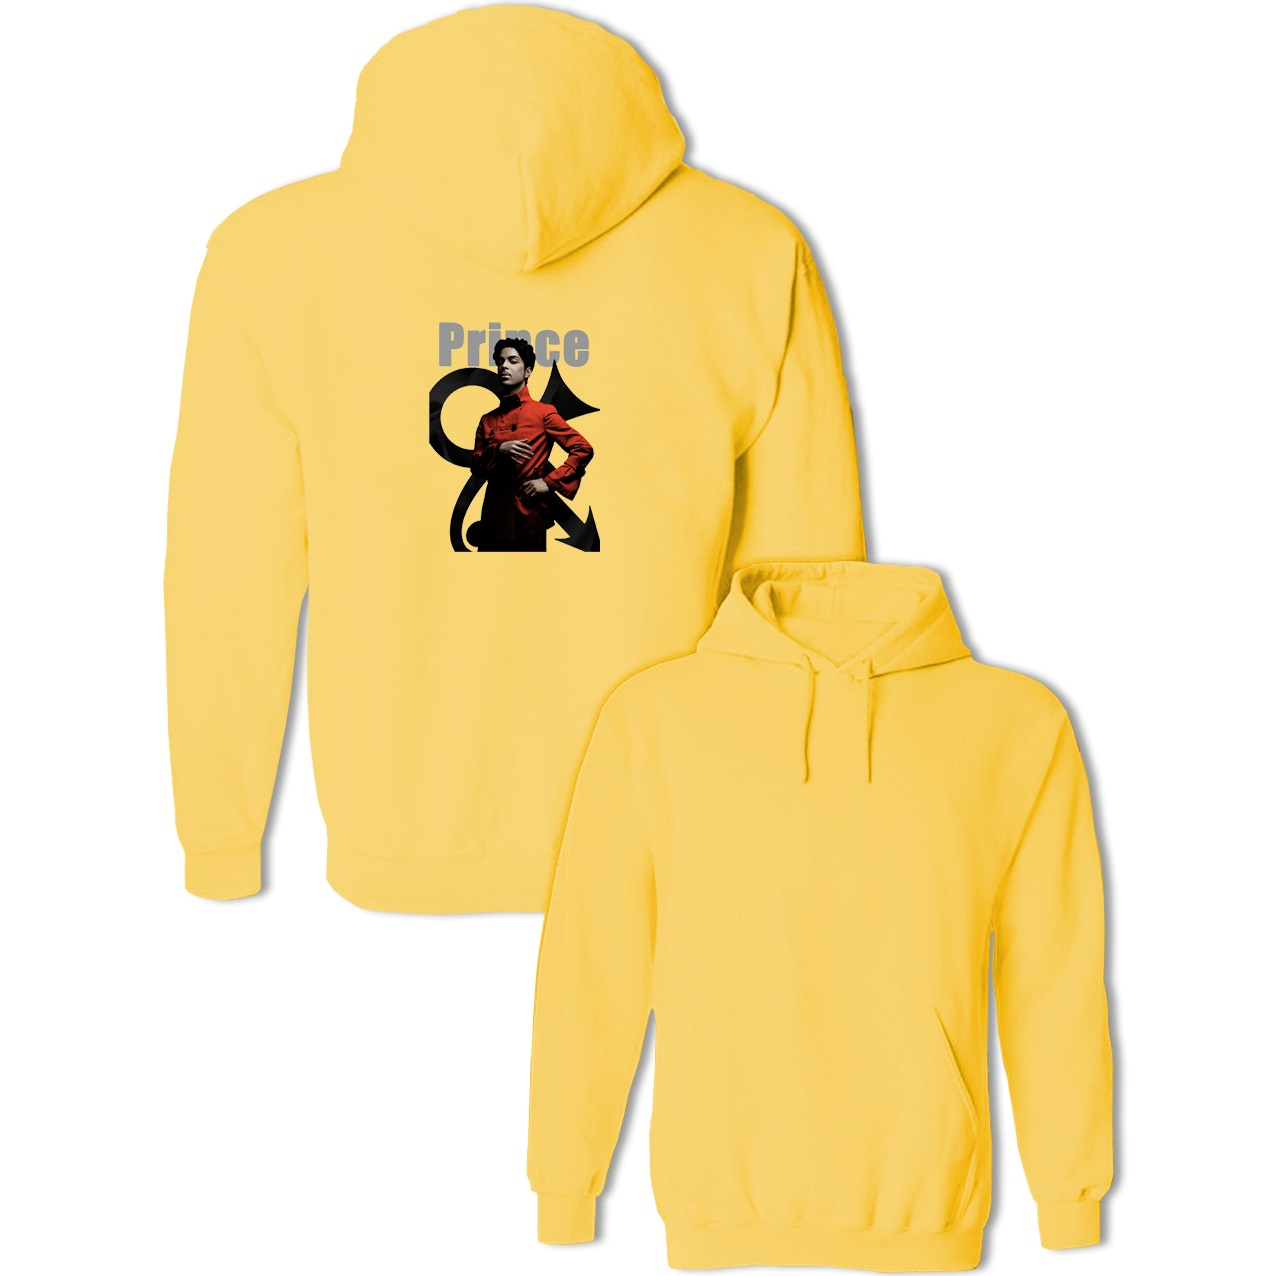 Popular Singer Prince Rogers Nelson Character Design Sweatshirts Womens Mens Cotton Hoodies Fashion Long Sleeve Pullovers Tops